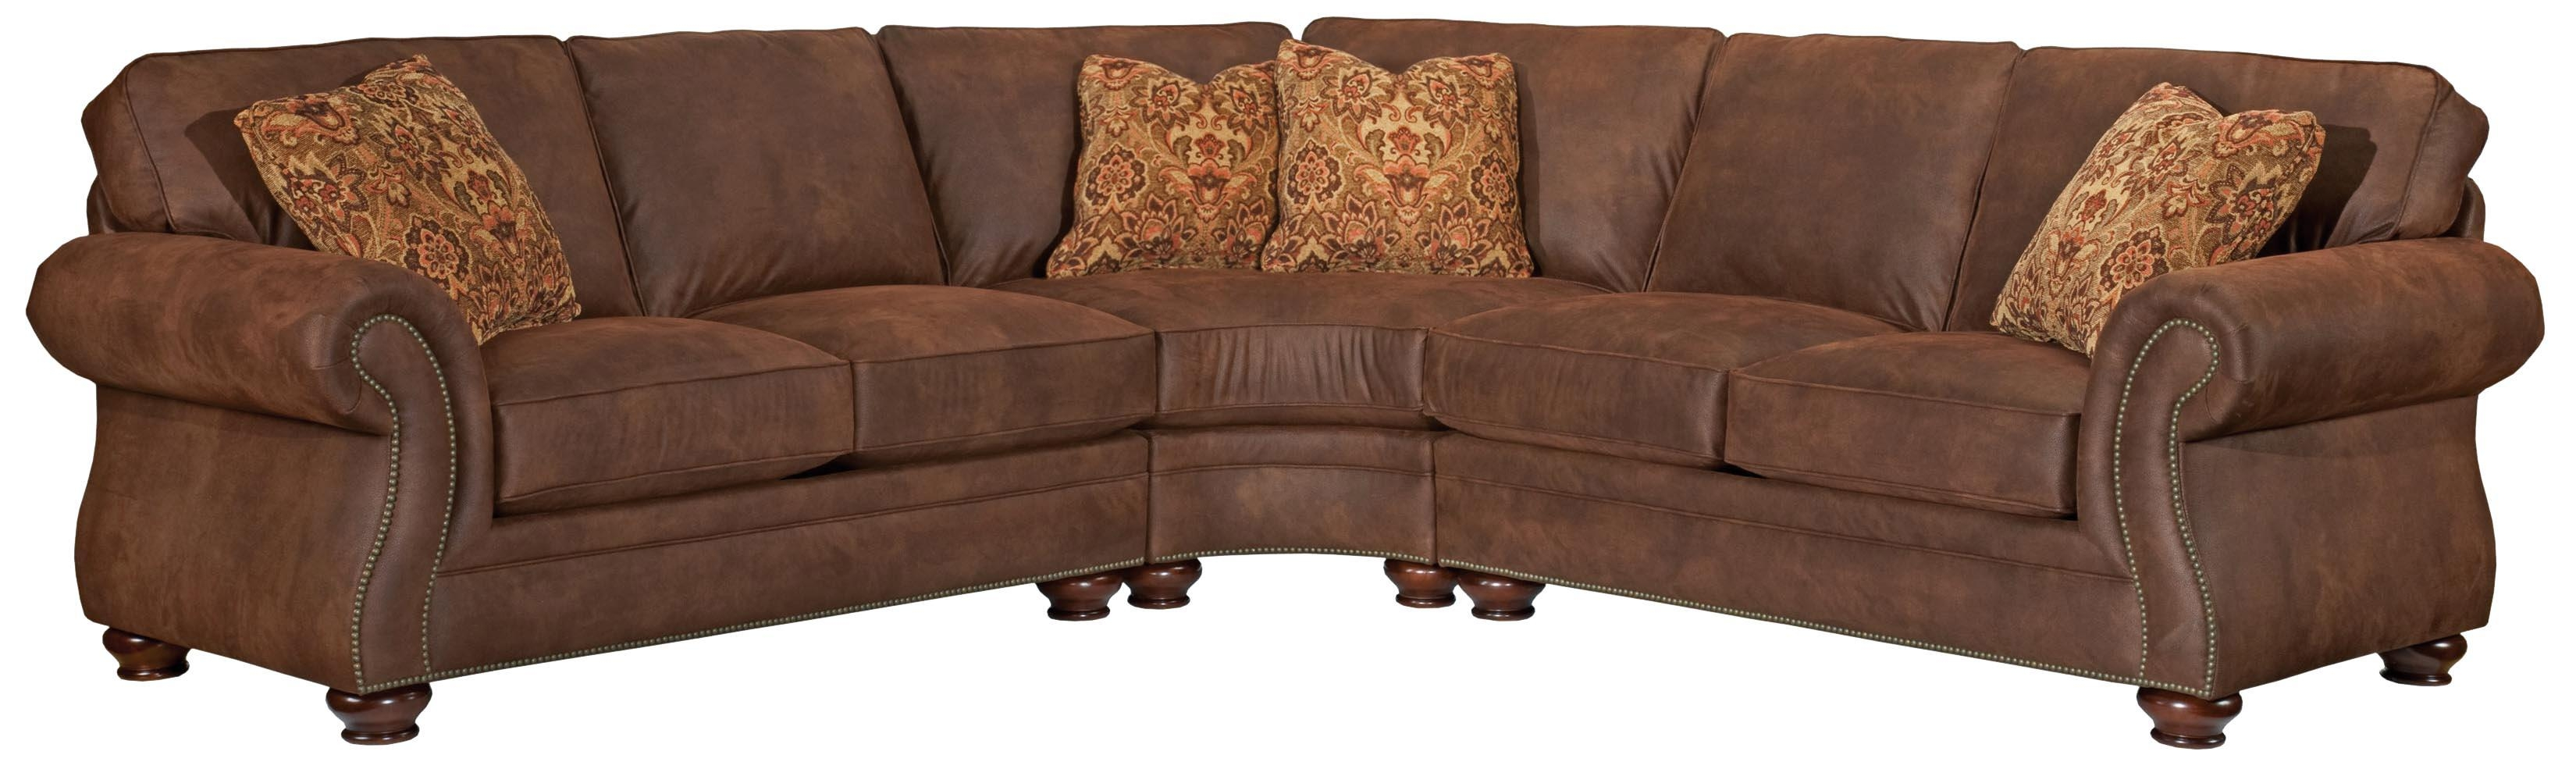 Featured Photo of Broyhill Sectional Sofa